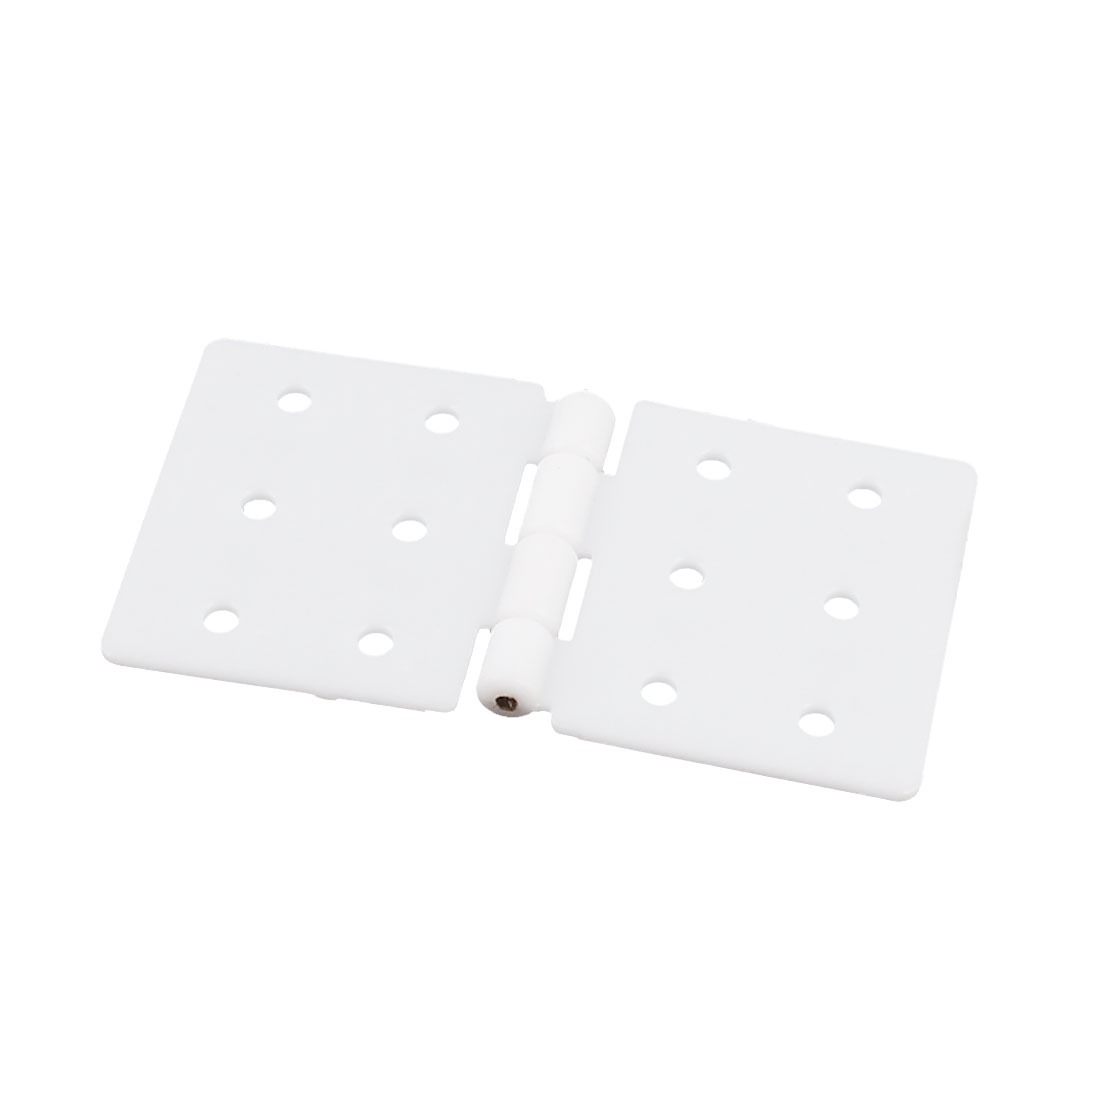 Large RC Aircraft Foldable White Plasitc Pinned Hinges 37 x 20mm